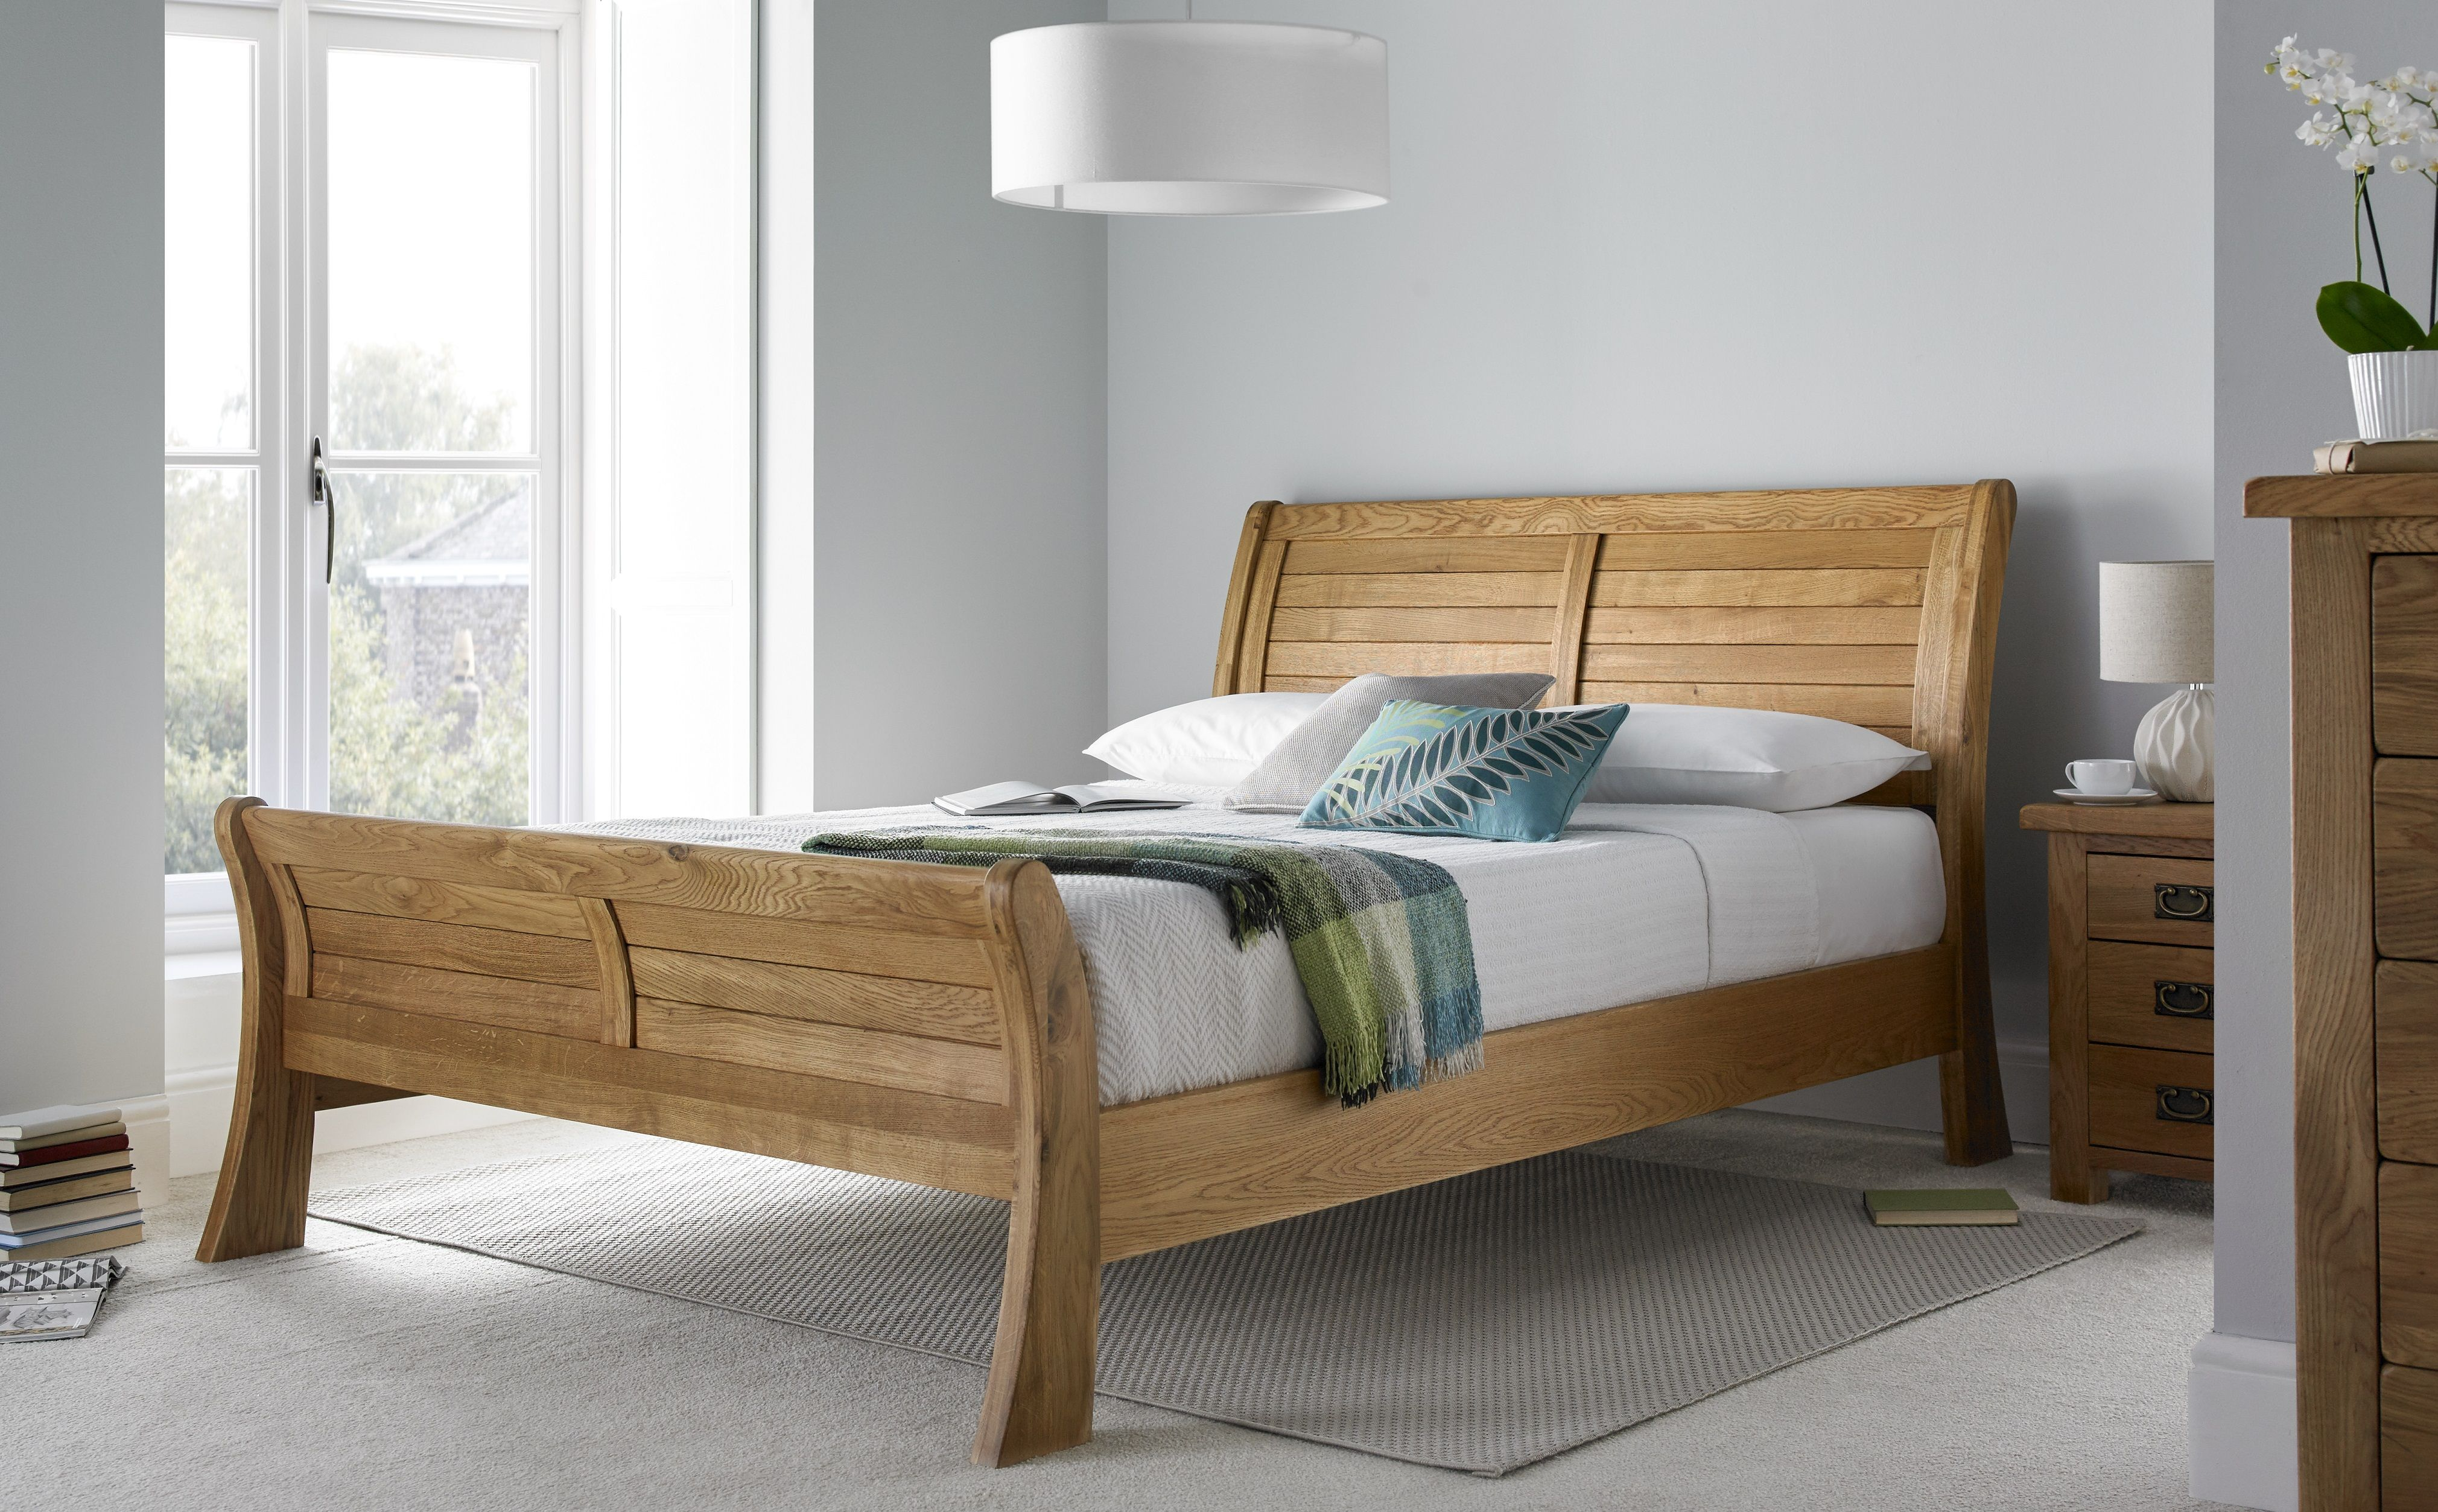 The Heritage Sleigh bed is a contemporary